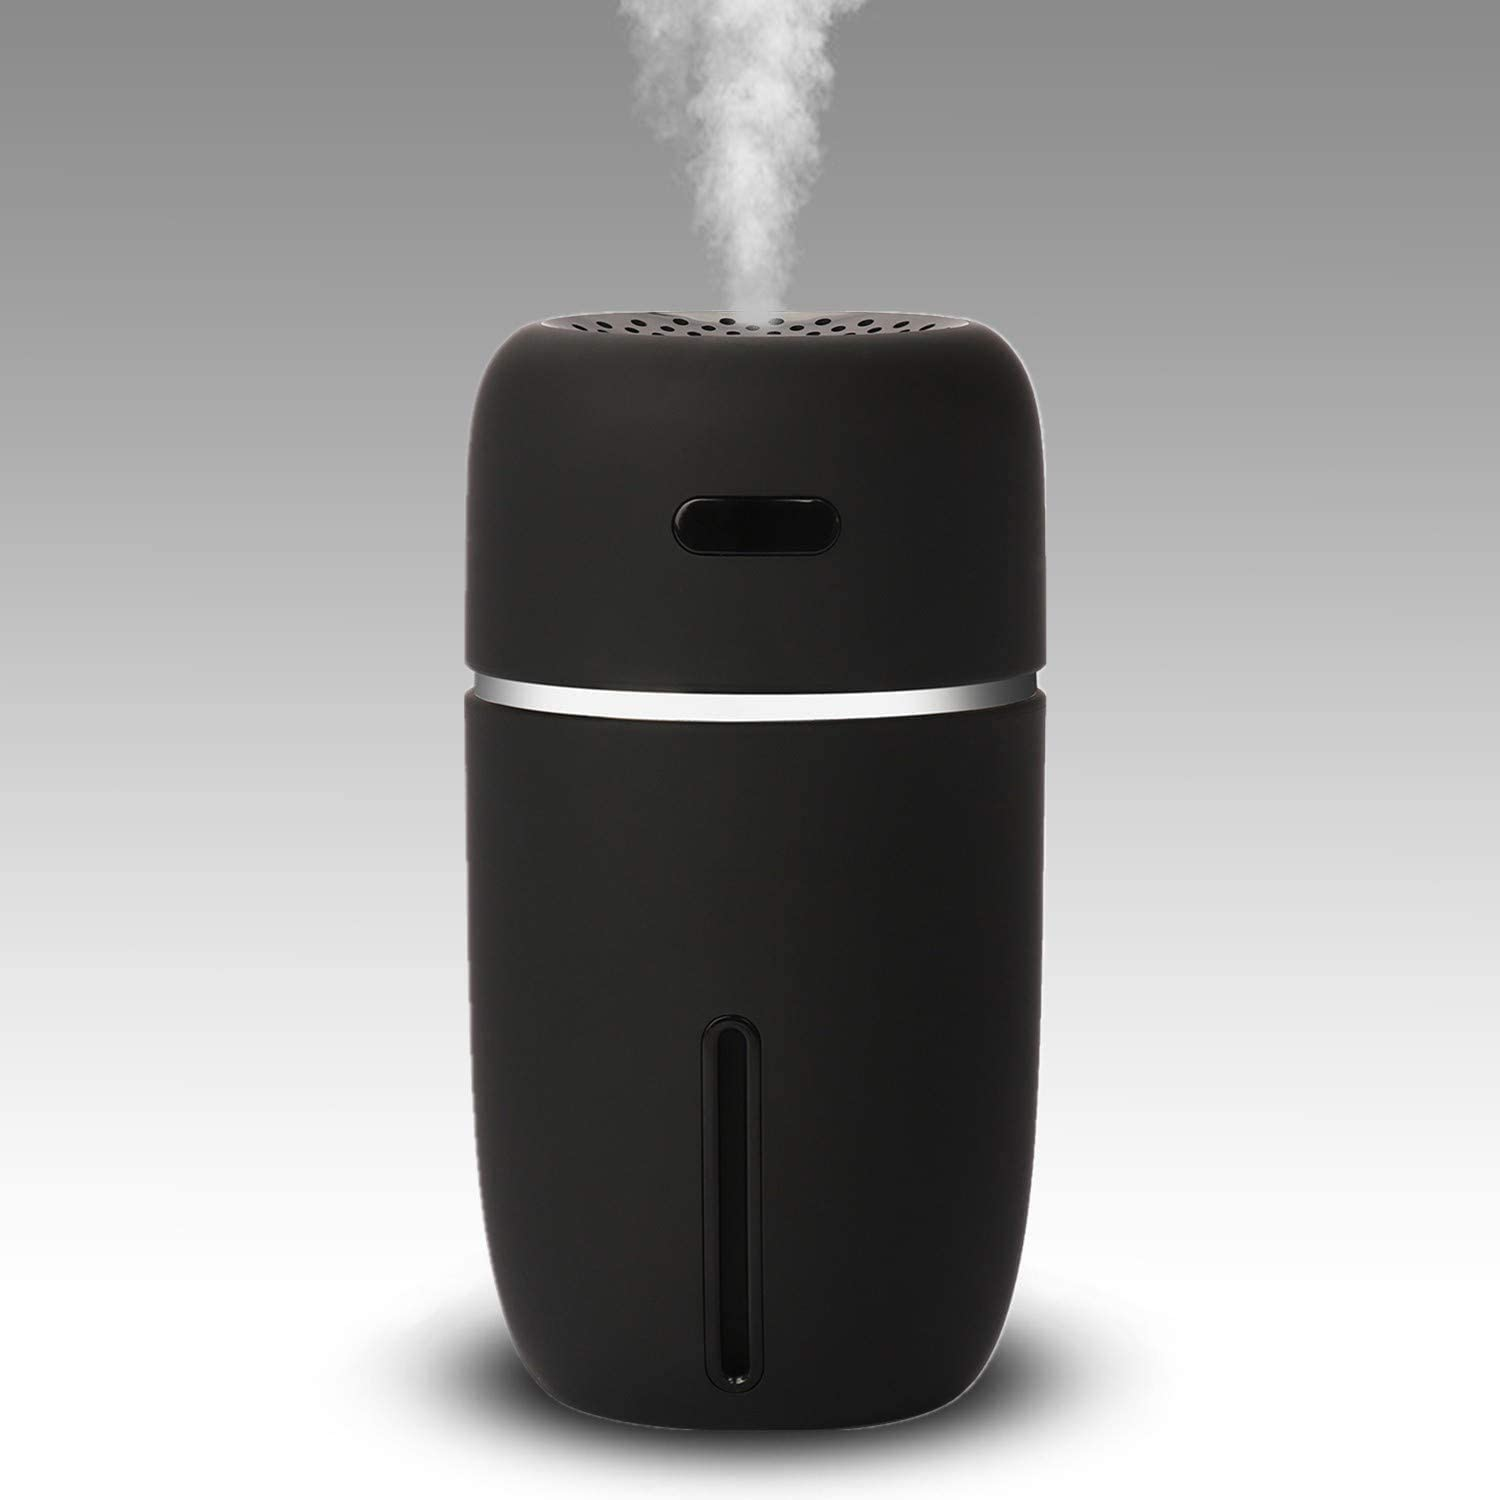 NovoLido Mini USB Humidifier Tucson Mall Outstanding with Spray Two Light 7-Colors Mist